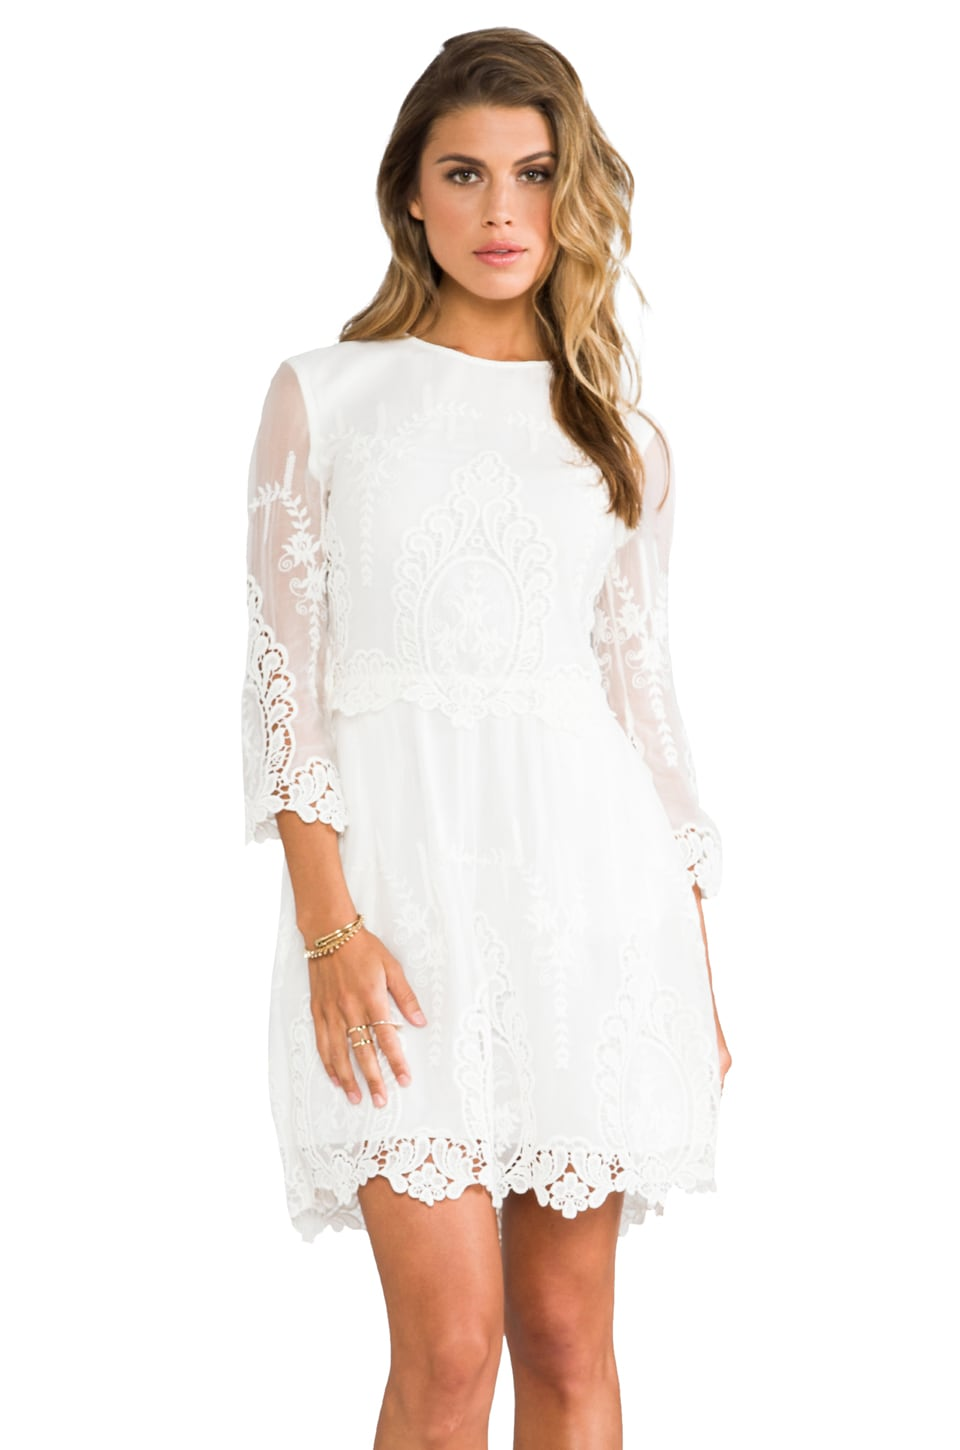 Dolce Vita Valentina Dress in Blanco